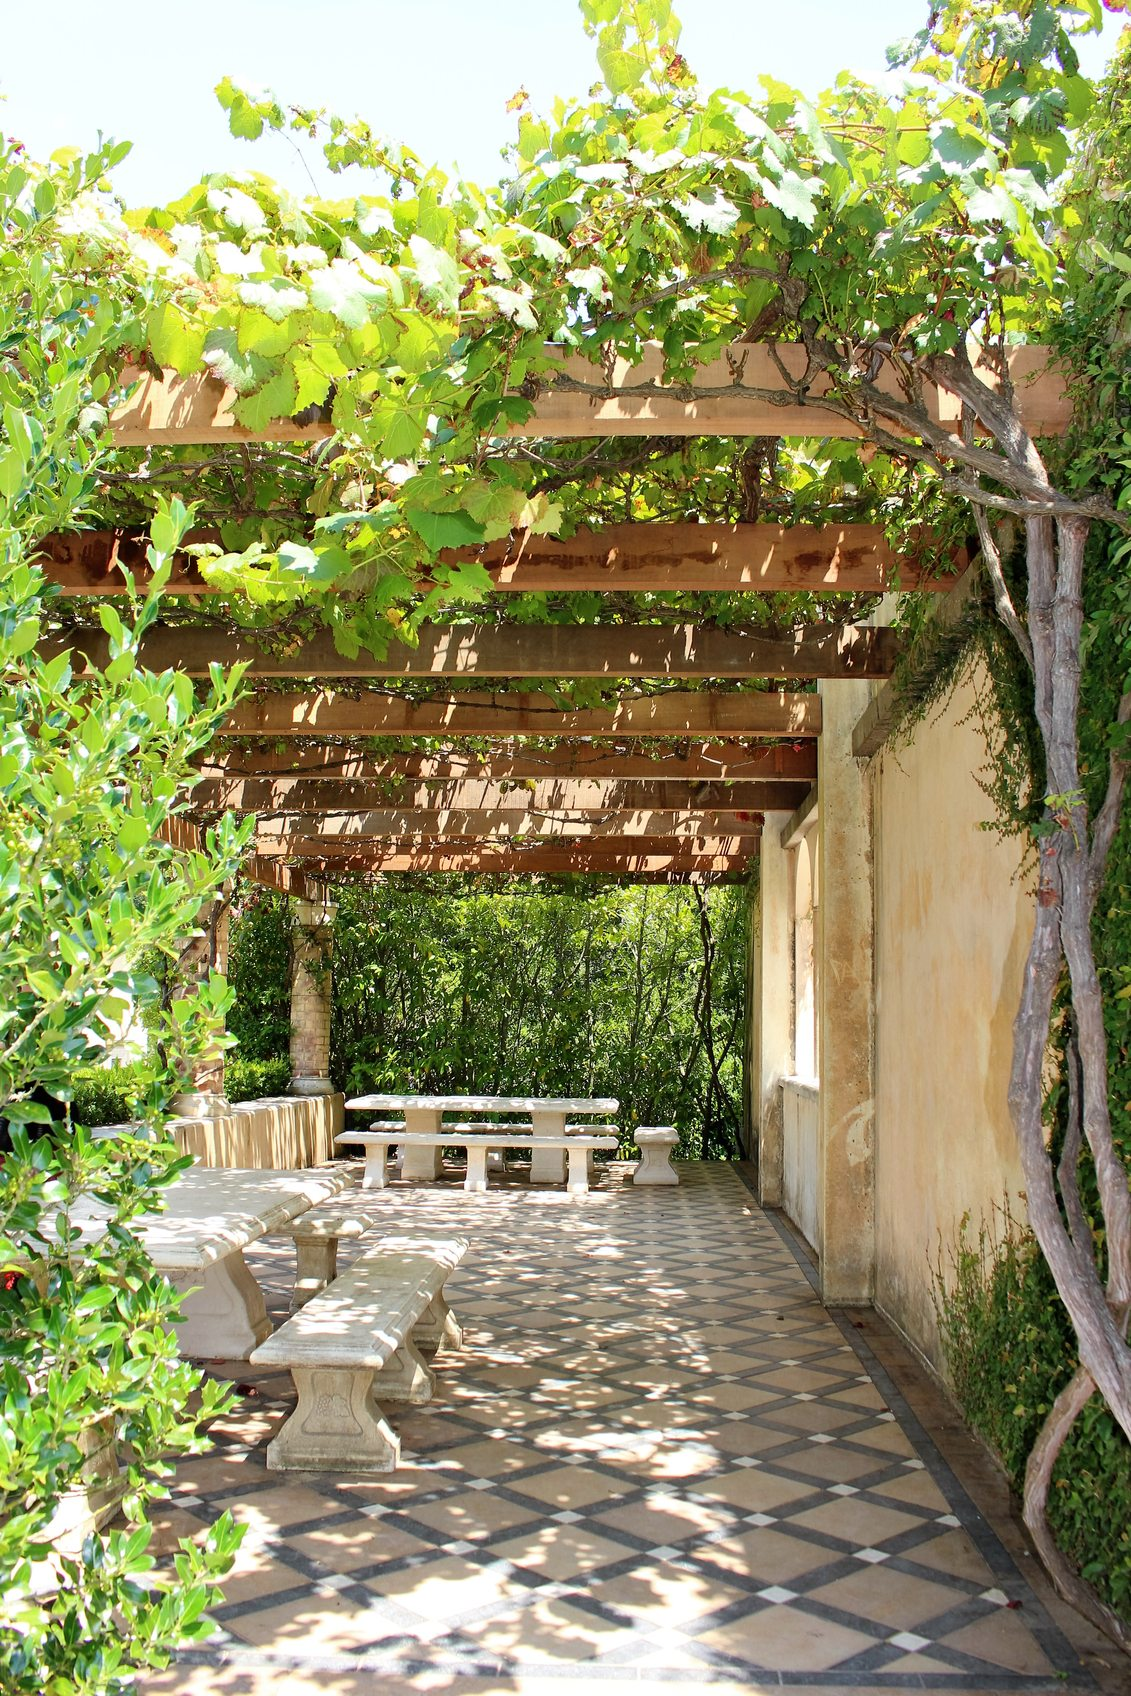 - Using Vines For Shade - Vines That Create Shade In The Garden